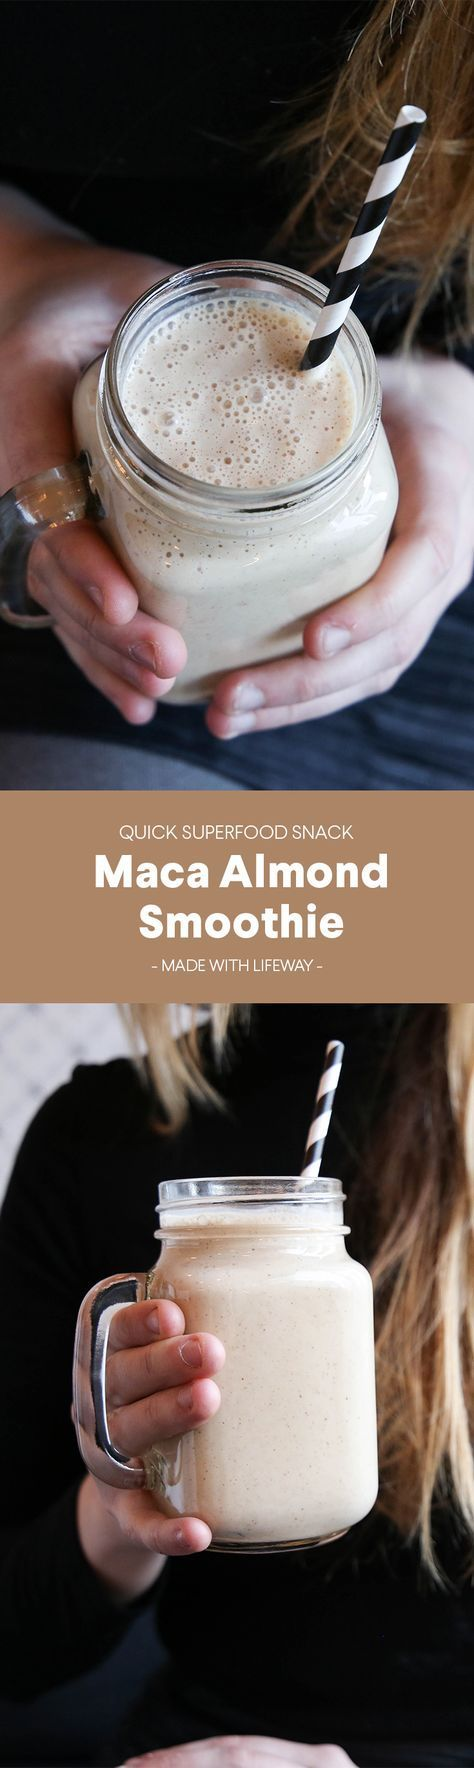 Naturally sweet maca meets rich almond butter in this decadent, probiotic-charged smoothie that will nourish your body and soul. #SmoothieSaturday